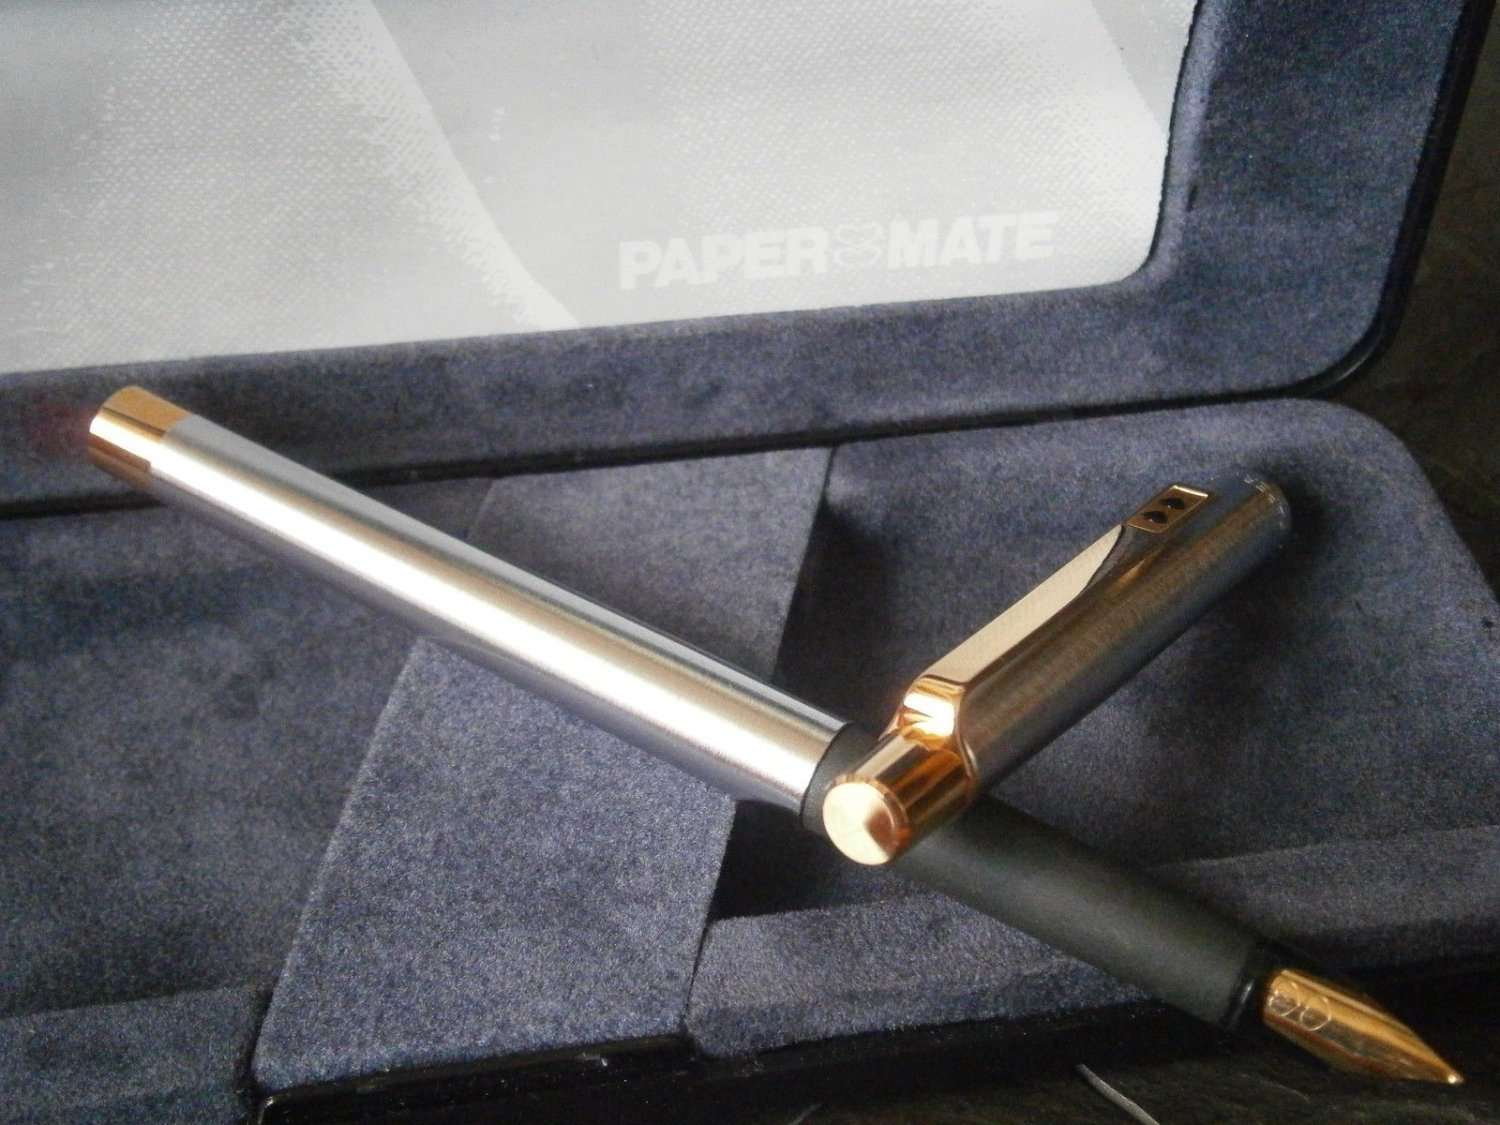 PAPERMATE DYNASTY fountain pen in steel Original in gift box with garantee